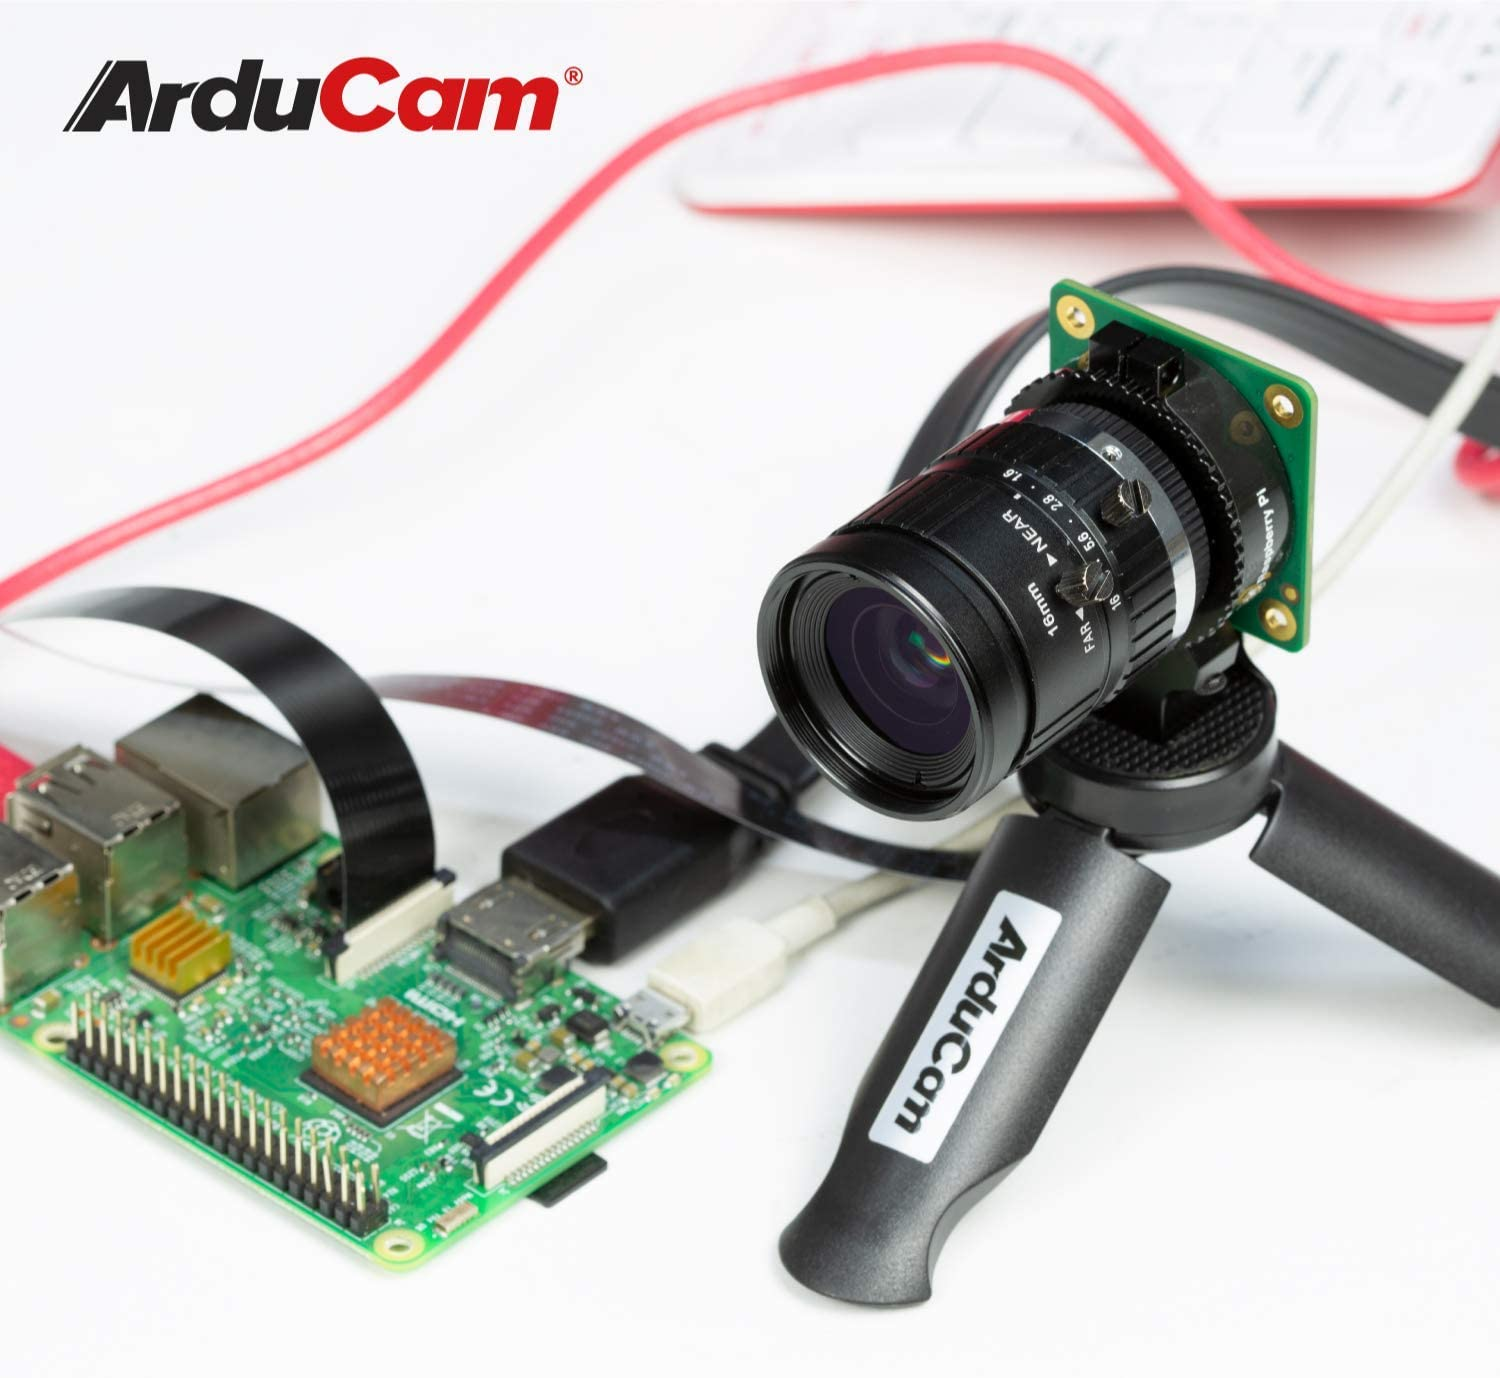 16mm Focal Length Telephoto C Lens with Portable Tripod Stand and 2ft//60cm Black Camera Cable Arducam C-Mount Lens Bundle for Raspberry Pi HQ Camera